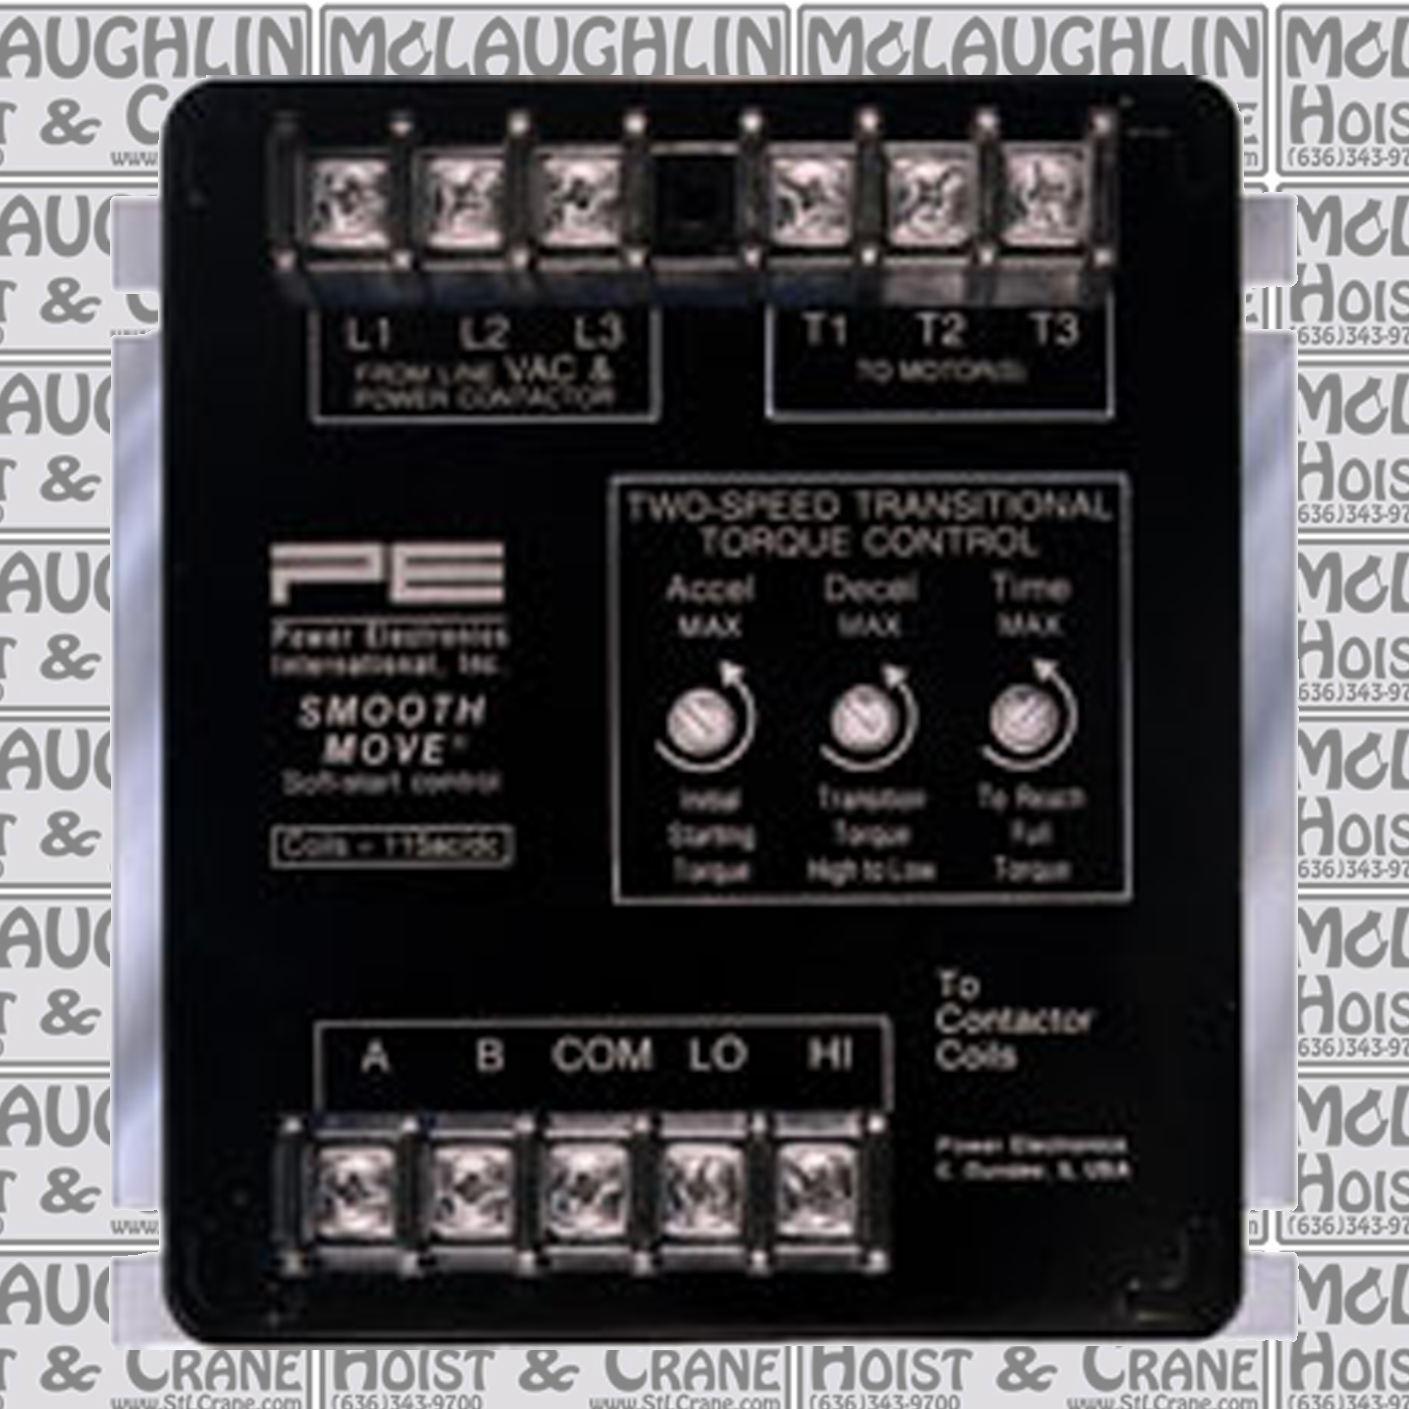 Power Electronics Smooth-Move & Smooth-Move 2